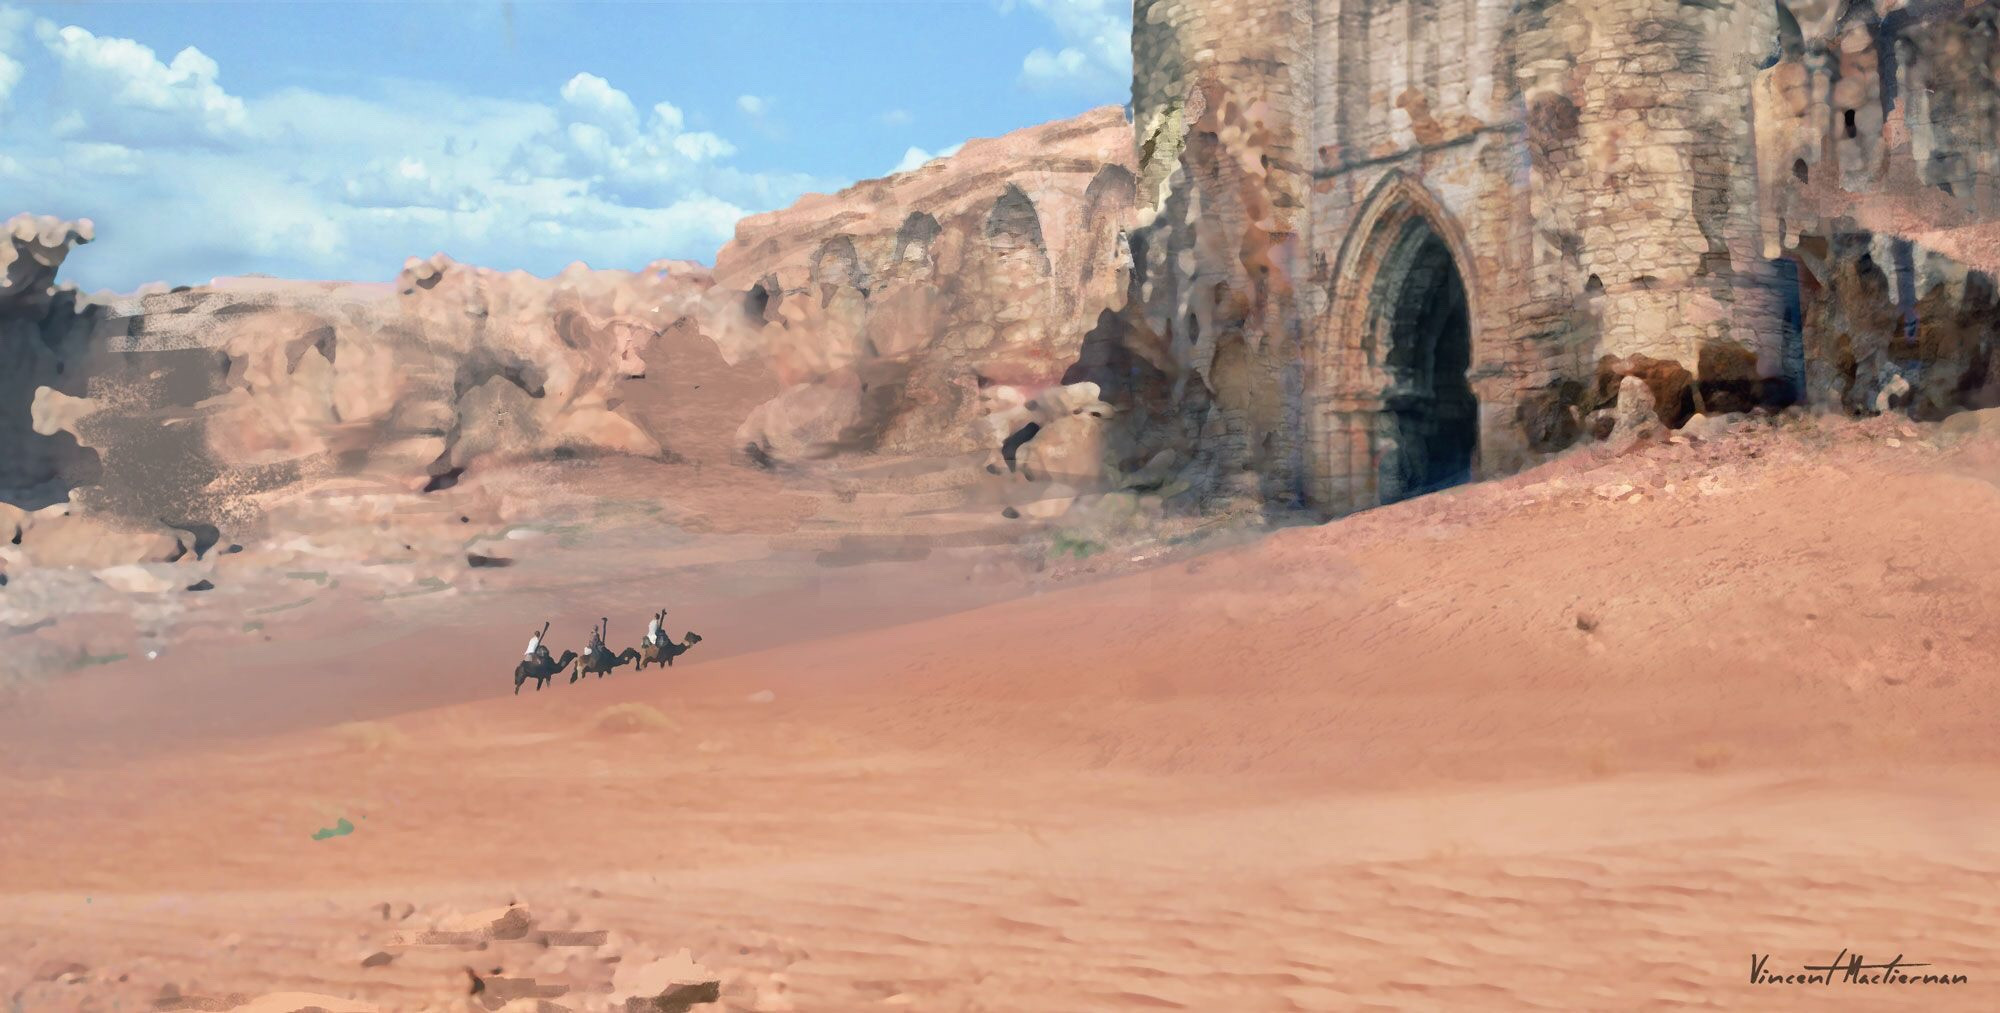 Arriving at the Catacomb of the Desert King